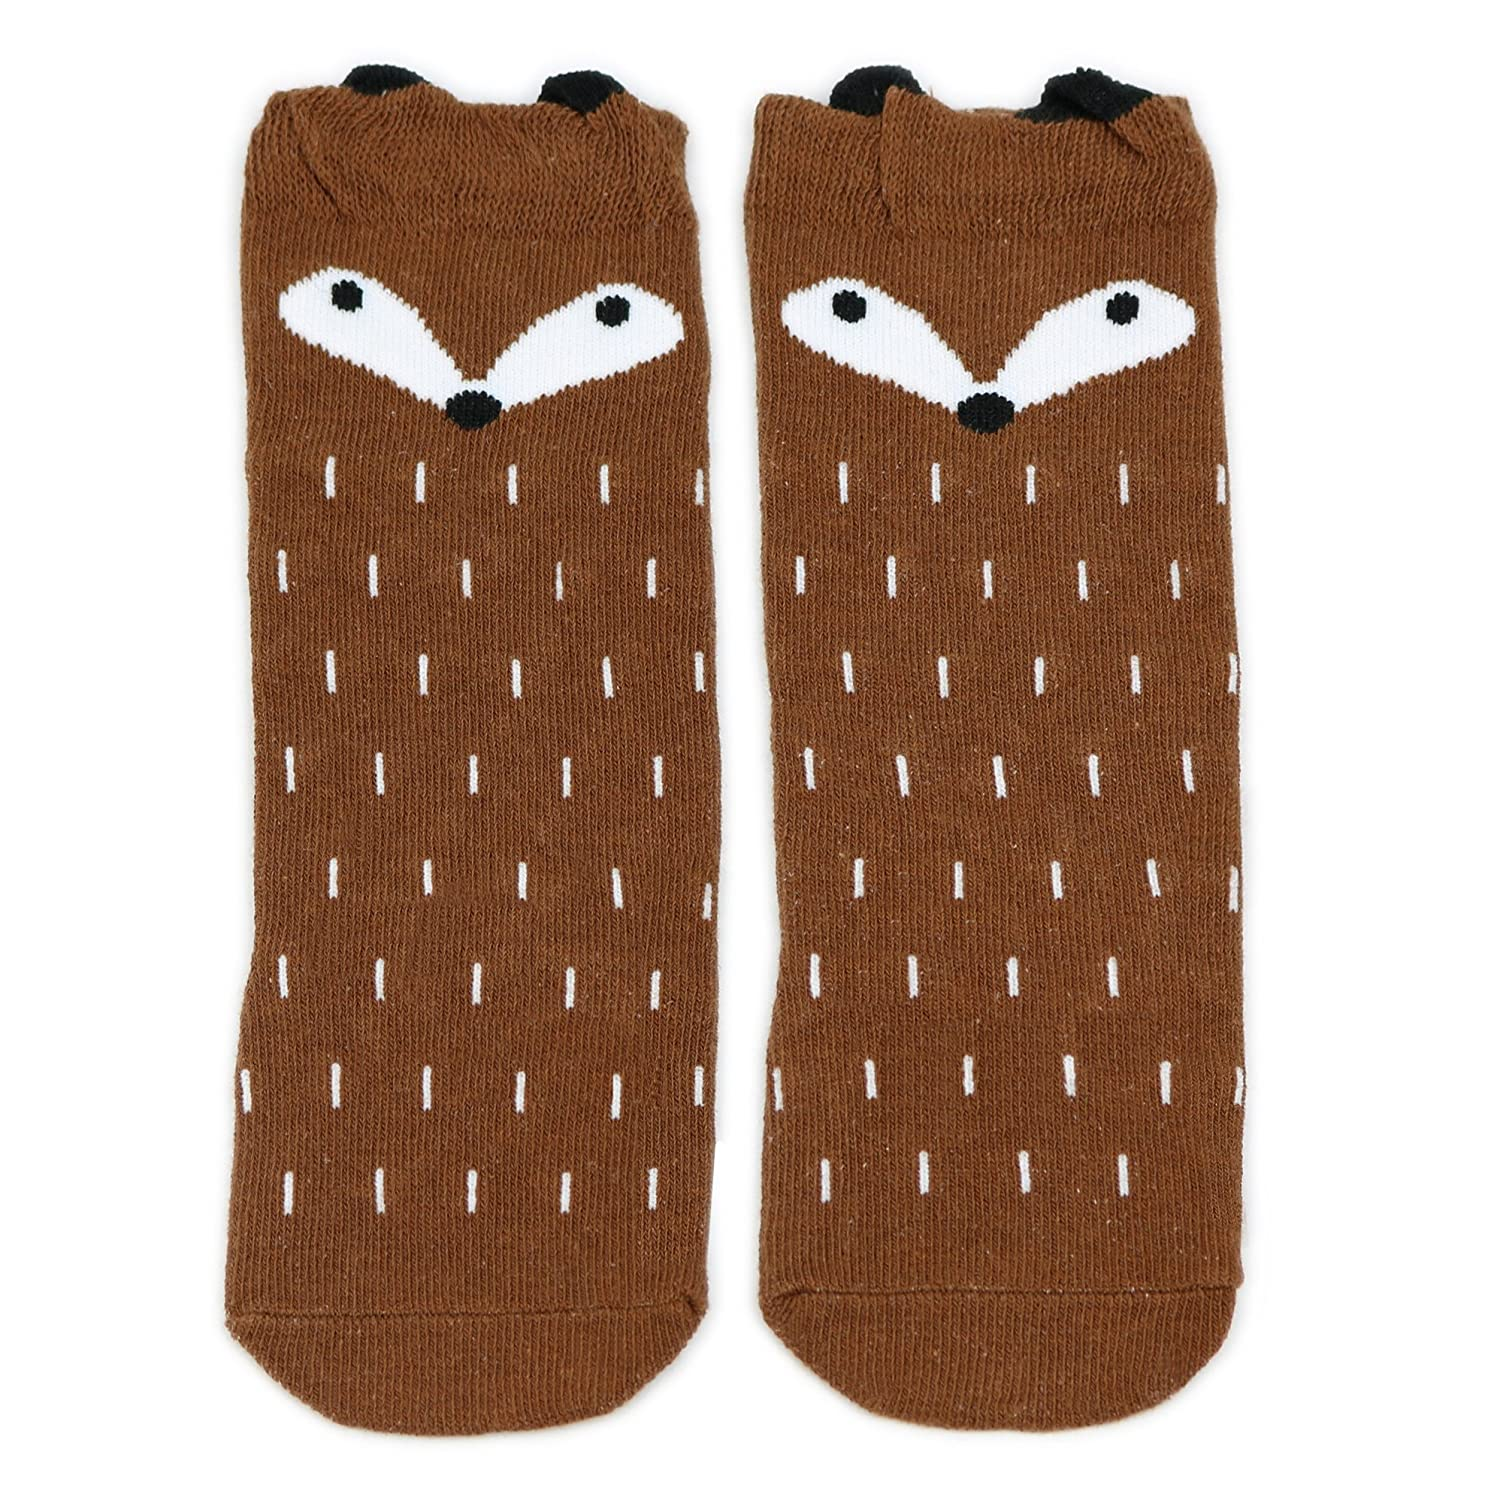 e8252ee3916 Dotty Fish - Knee High Cotton Socks for Baby Boys   Girls - Fox and Owl  designs in Small